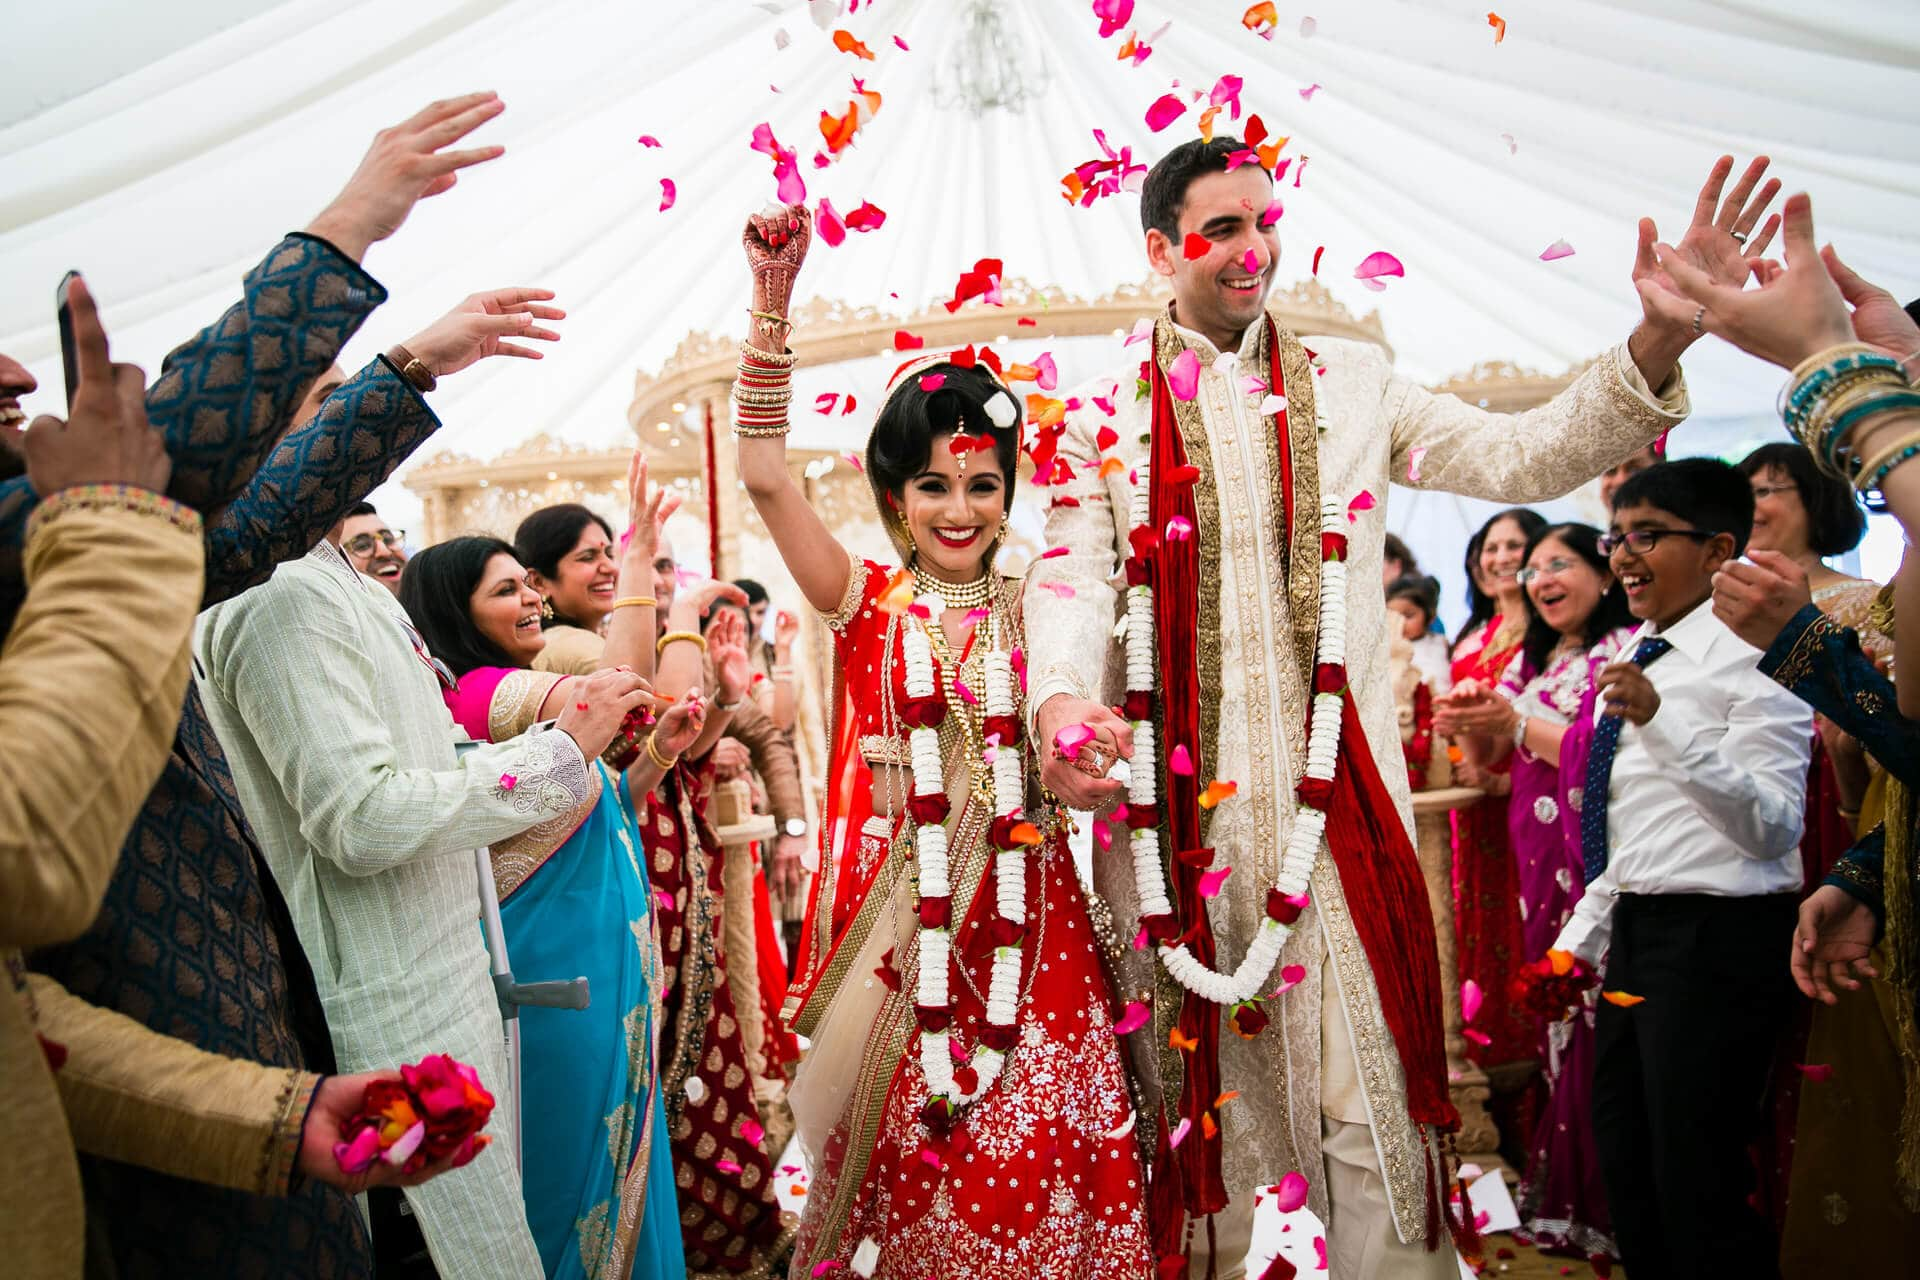 Bride and groom happy vidhai ceremony